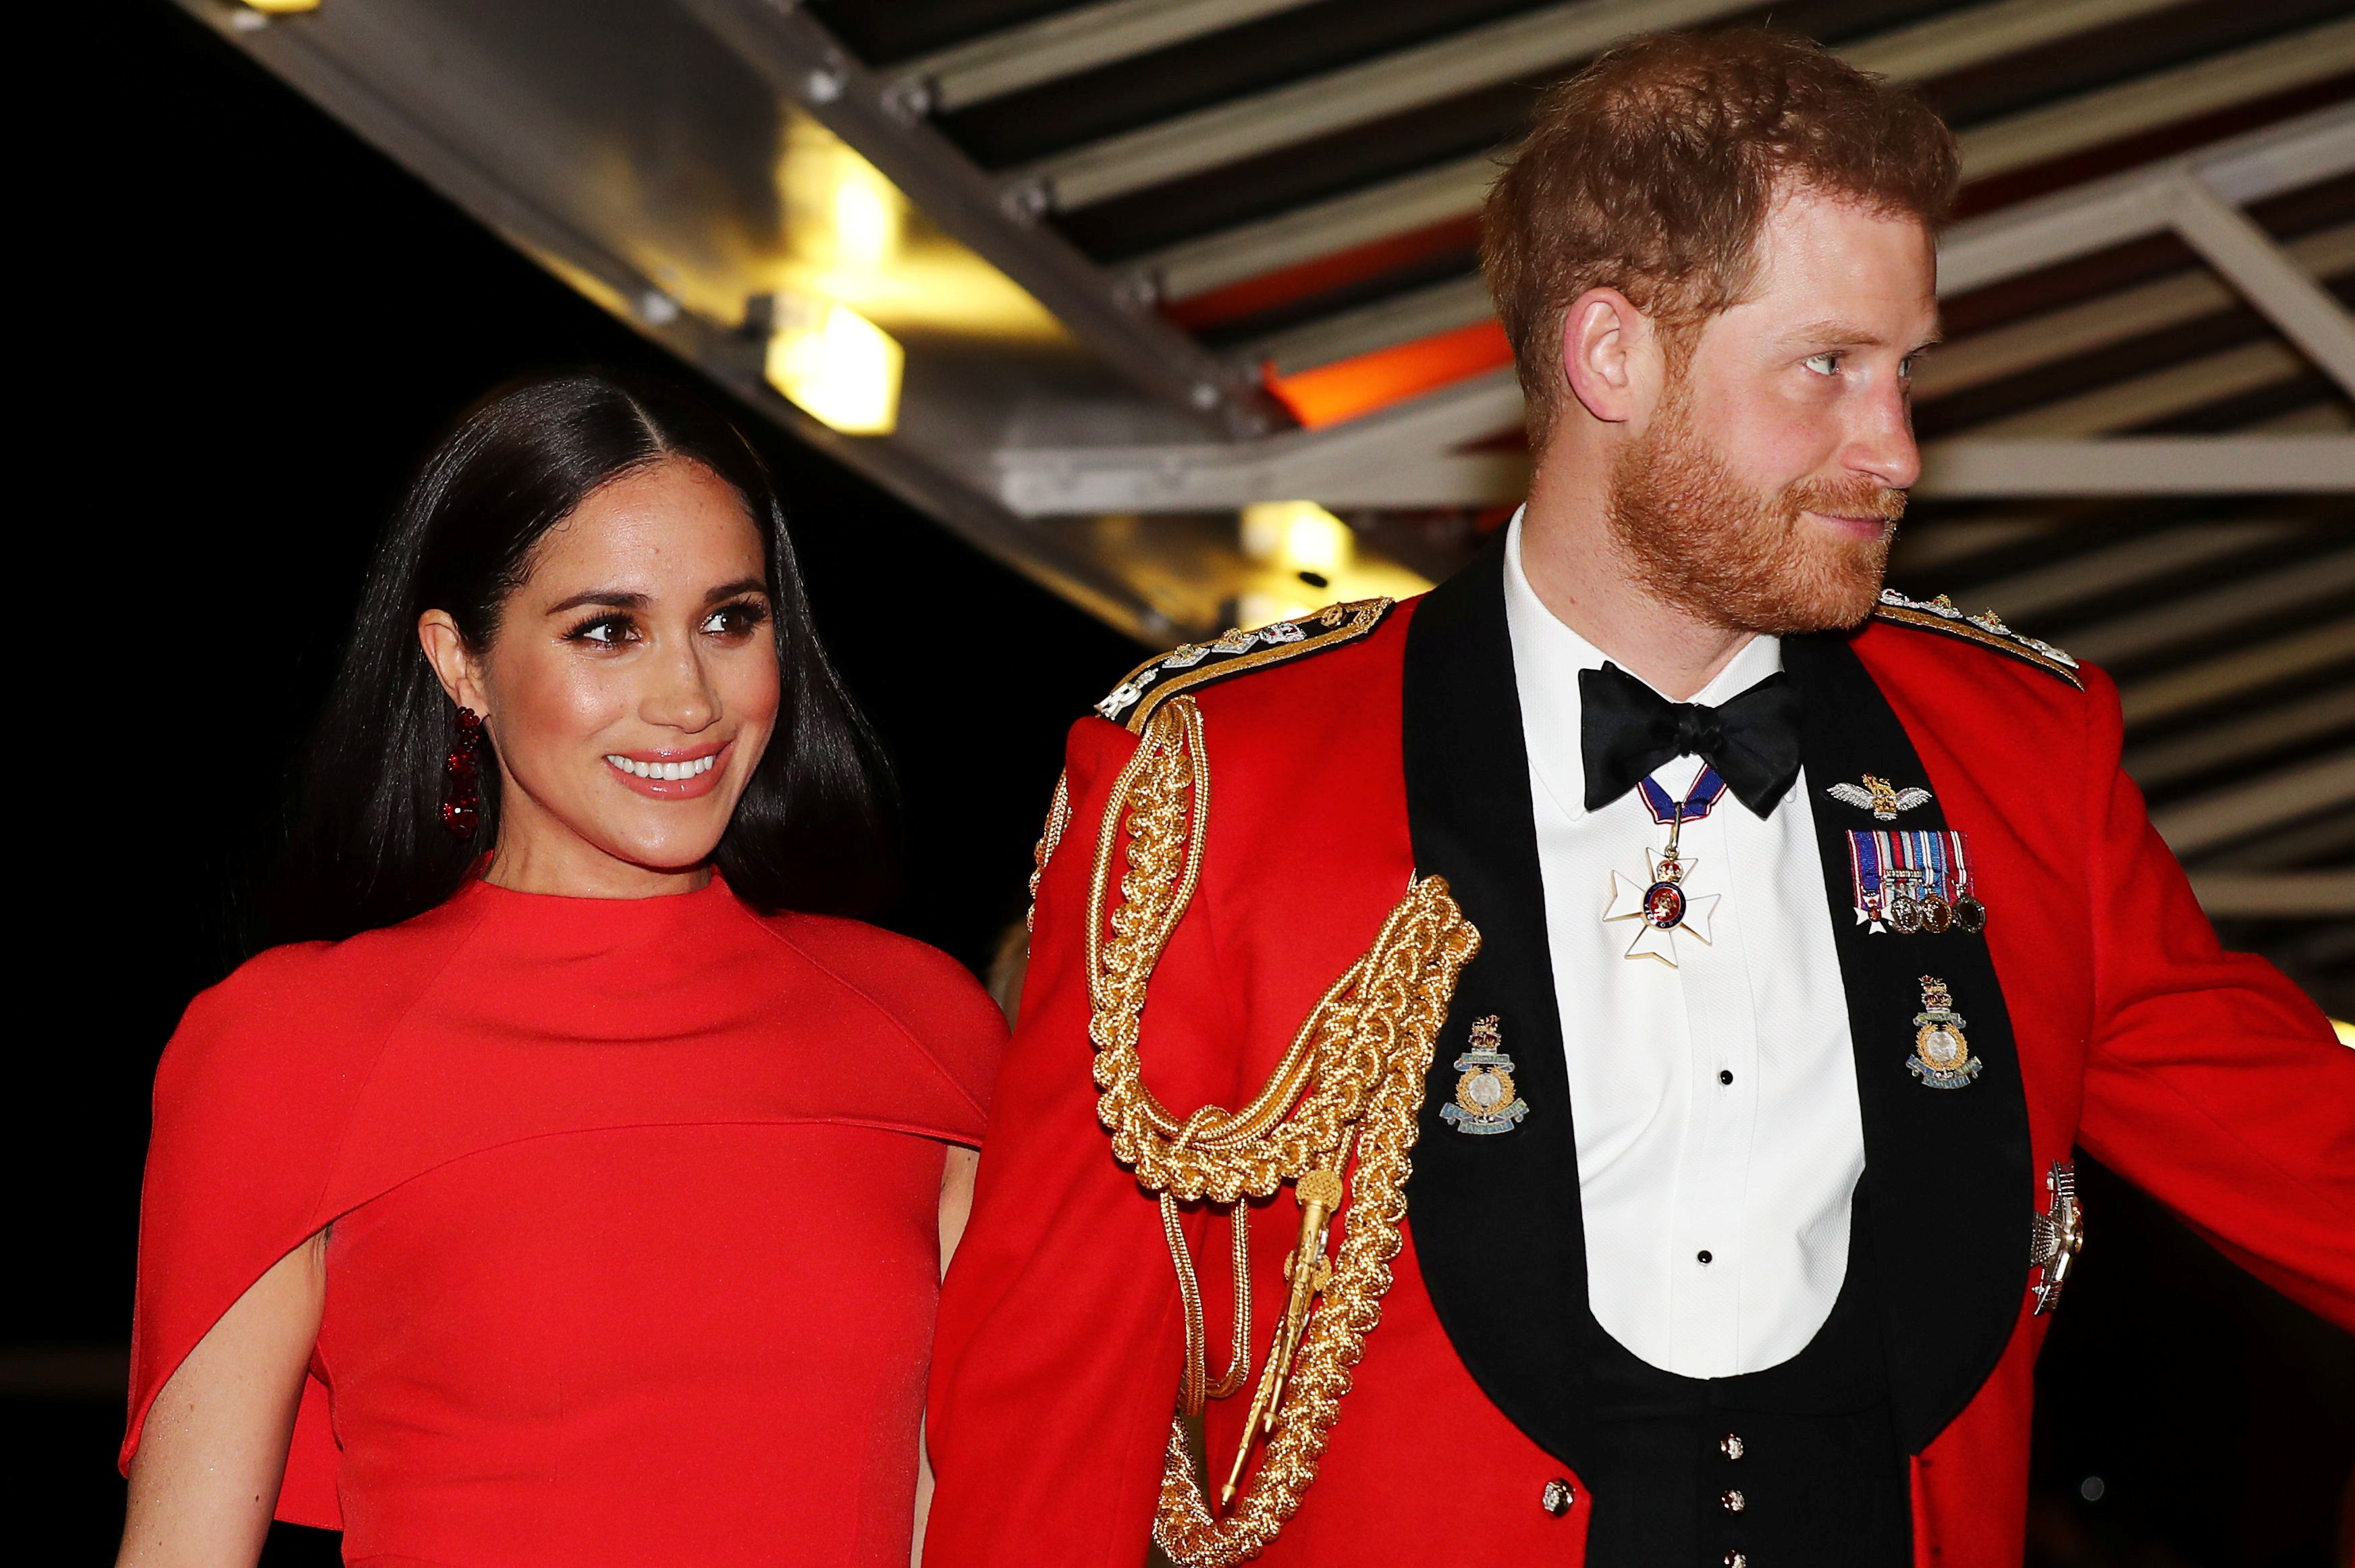 Meghan and Harry in red outfits as they attend an event during their farewell tour